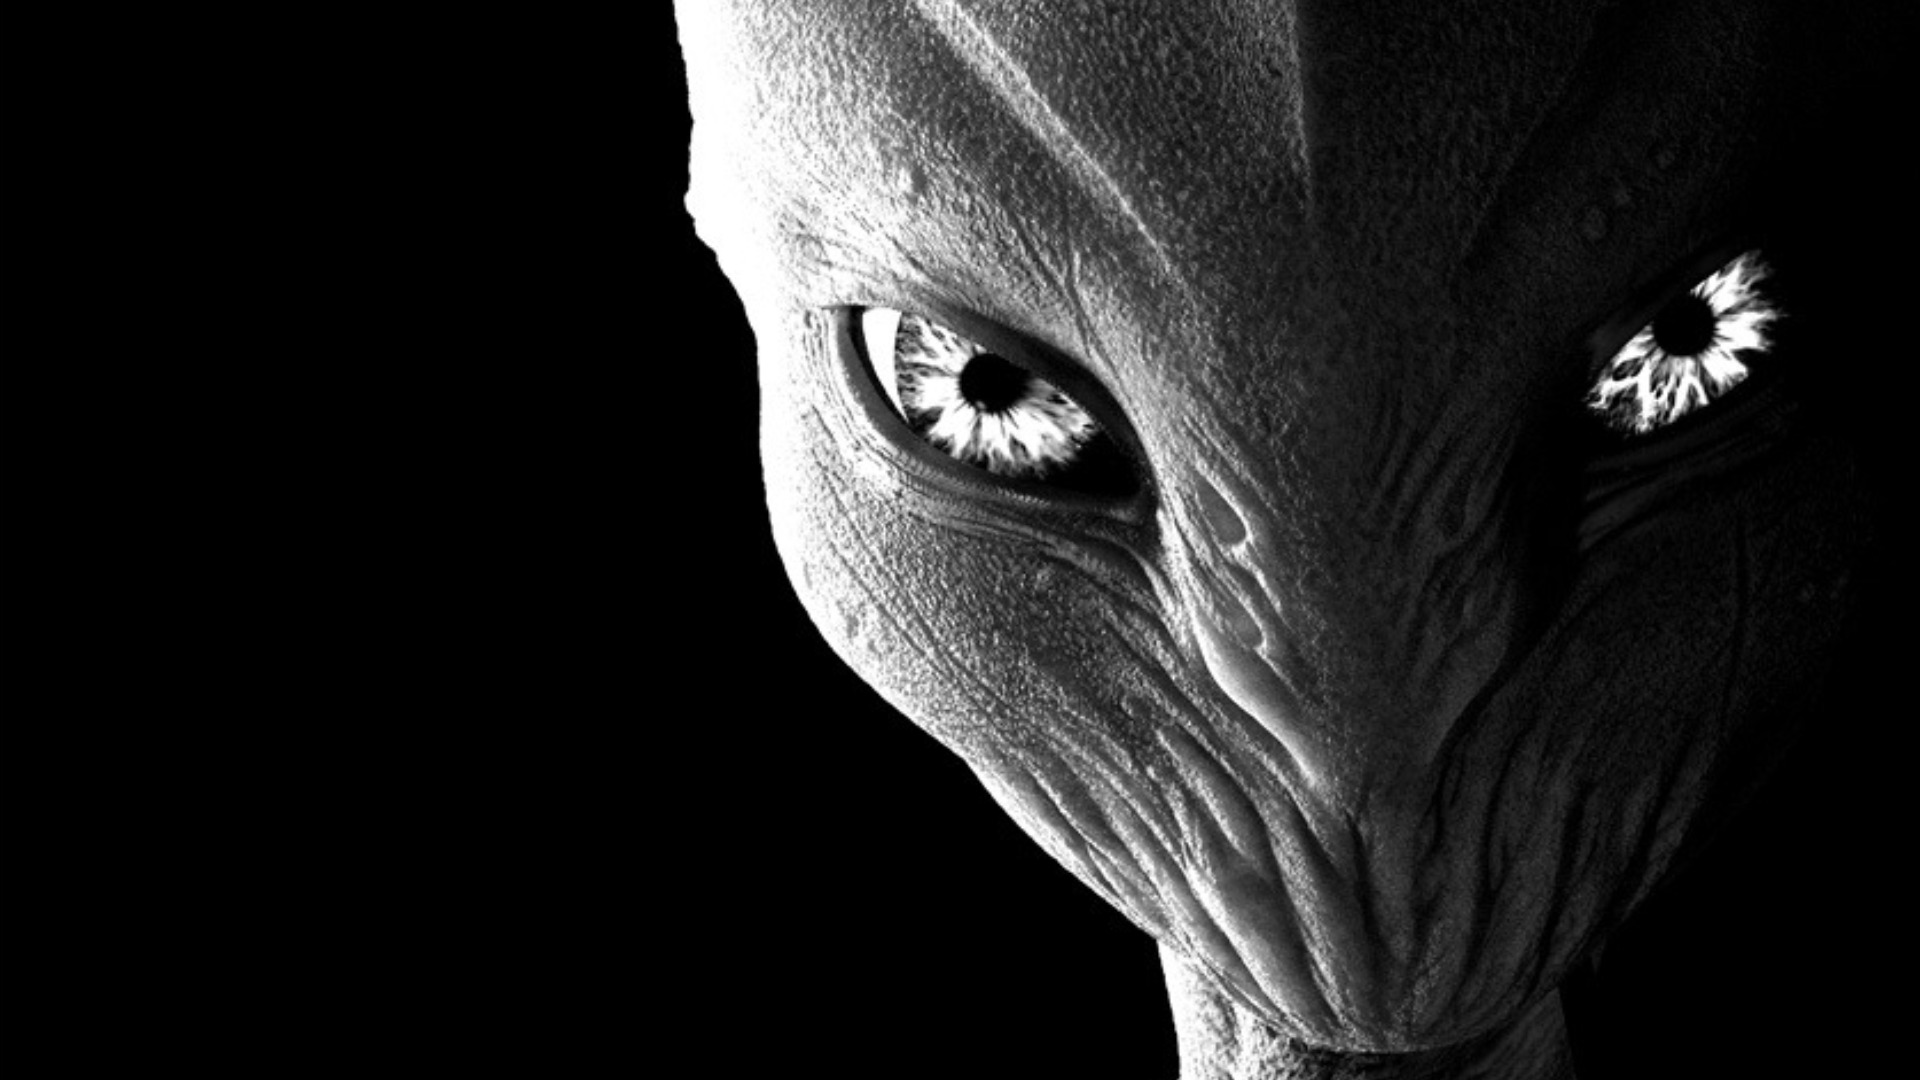 alien wallpaper hd free download